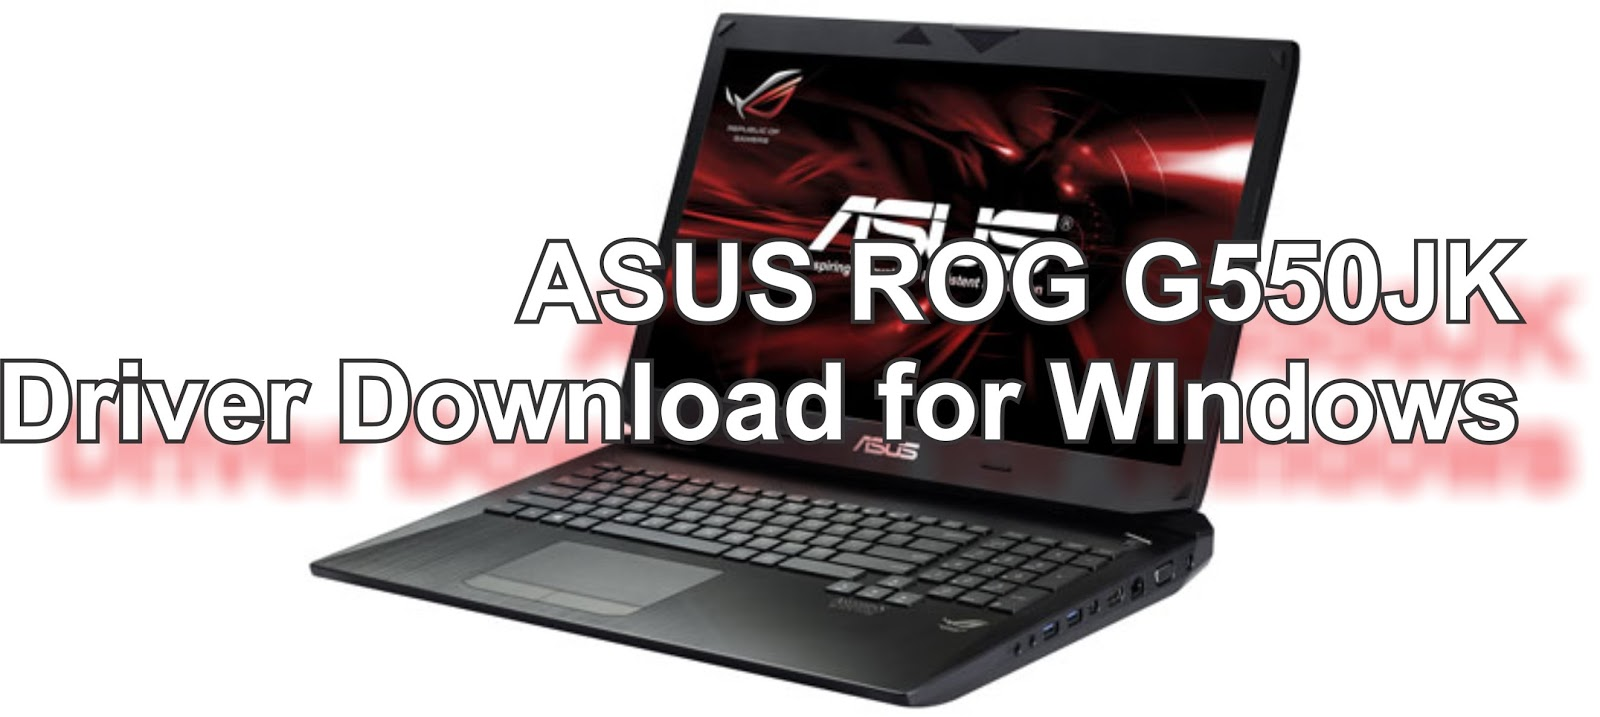 ASUS ROG G550JK REALTEK AUDIO DRIVERS FOR WINDOWS VISTA